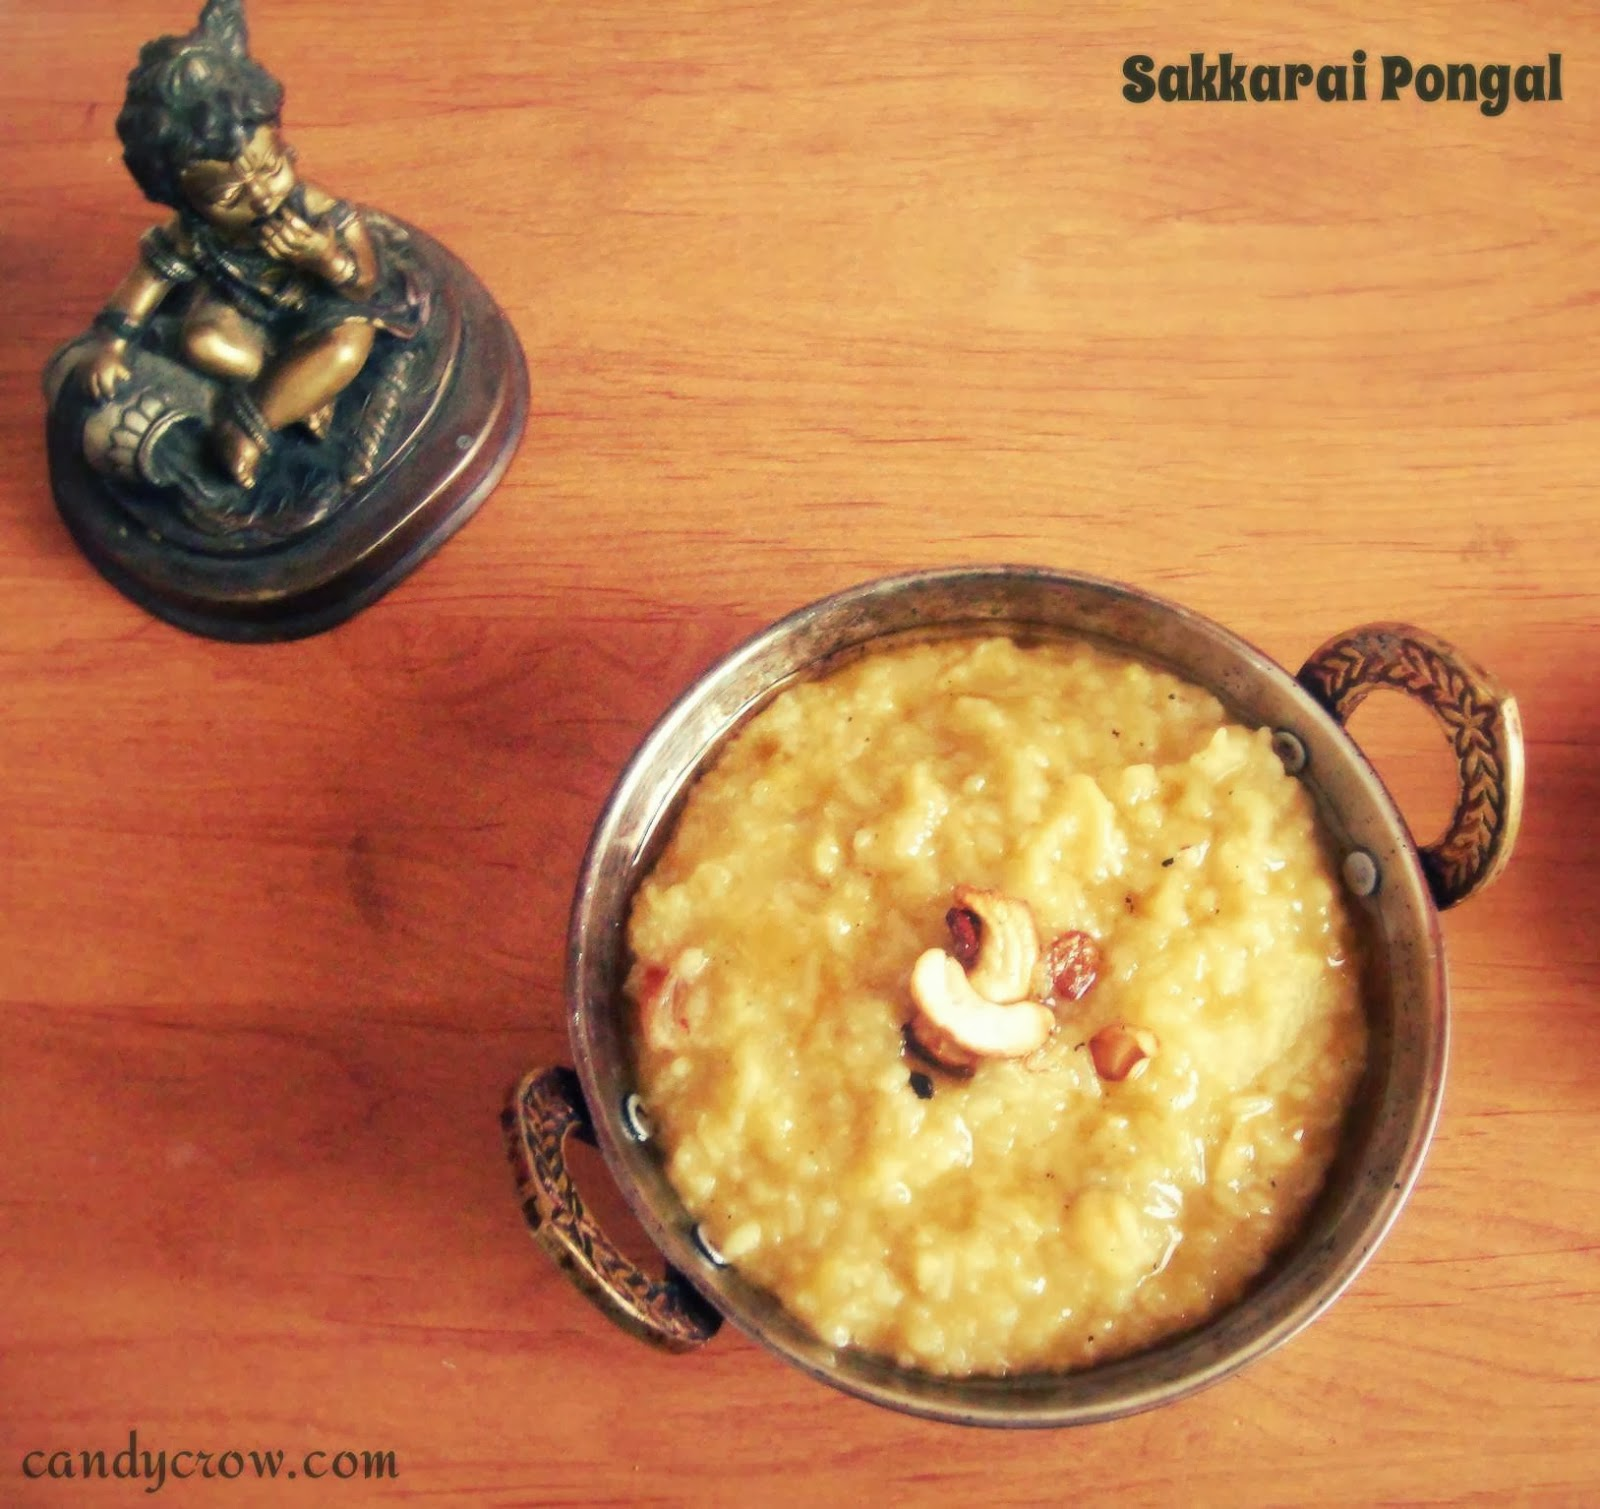 Sweet Pongal or Sakkarai Pongal Recipe - Candy Crow